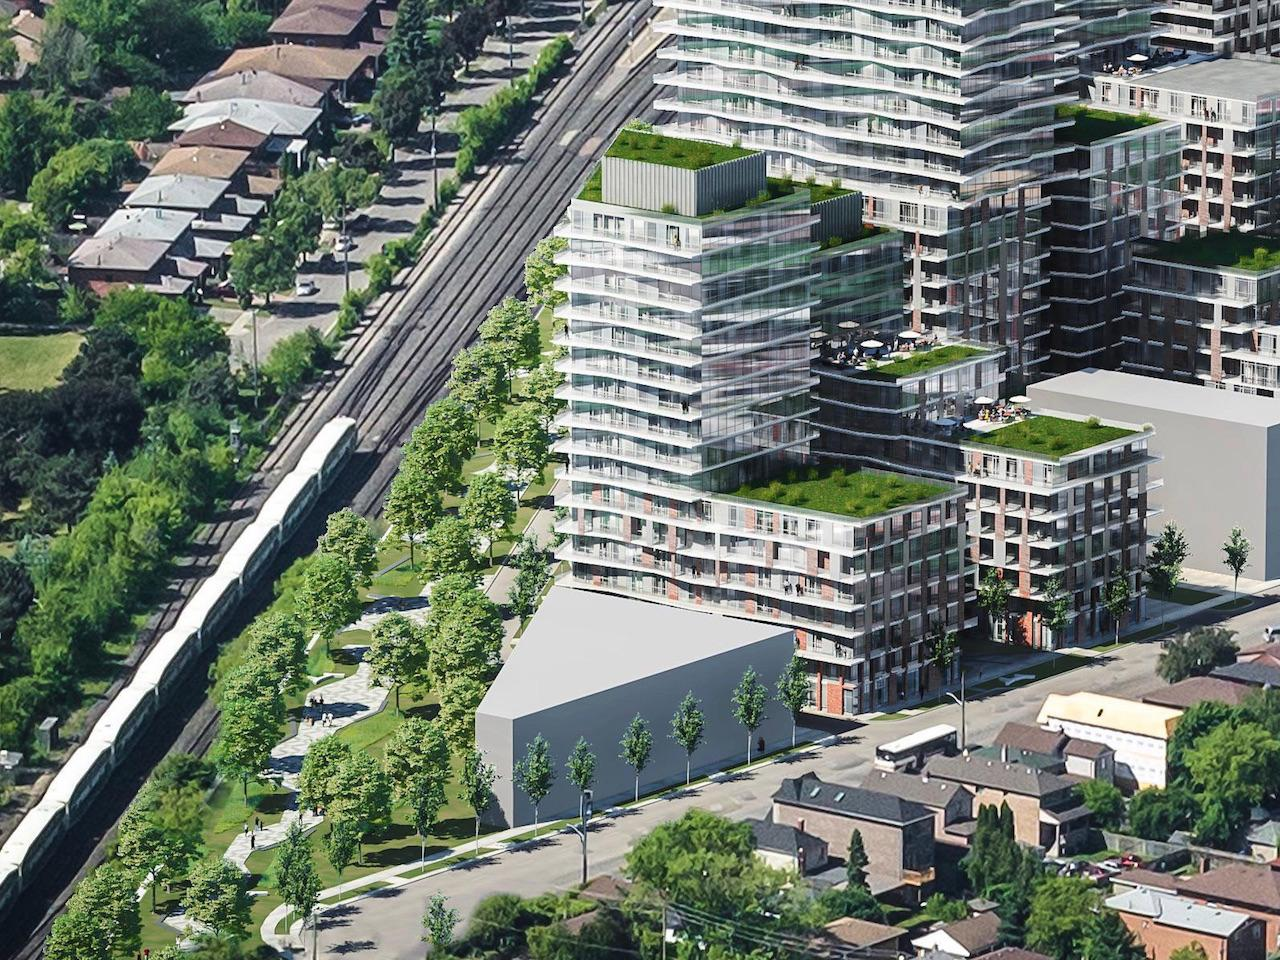 Aerial lower portion view of Grand Park Village Condos.